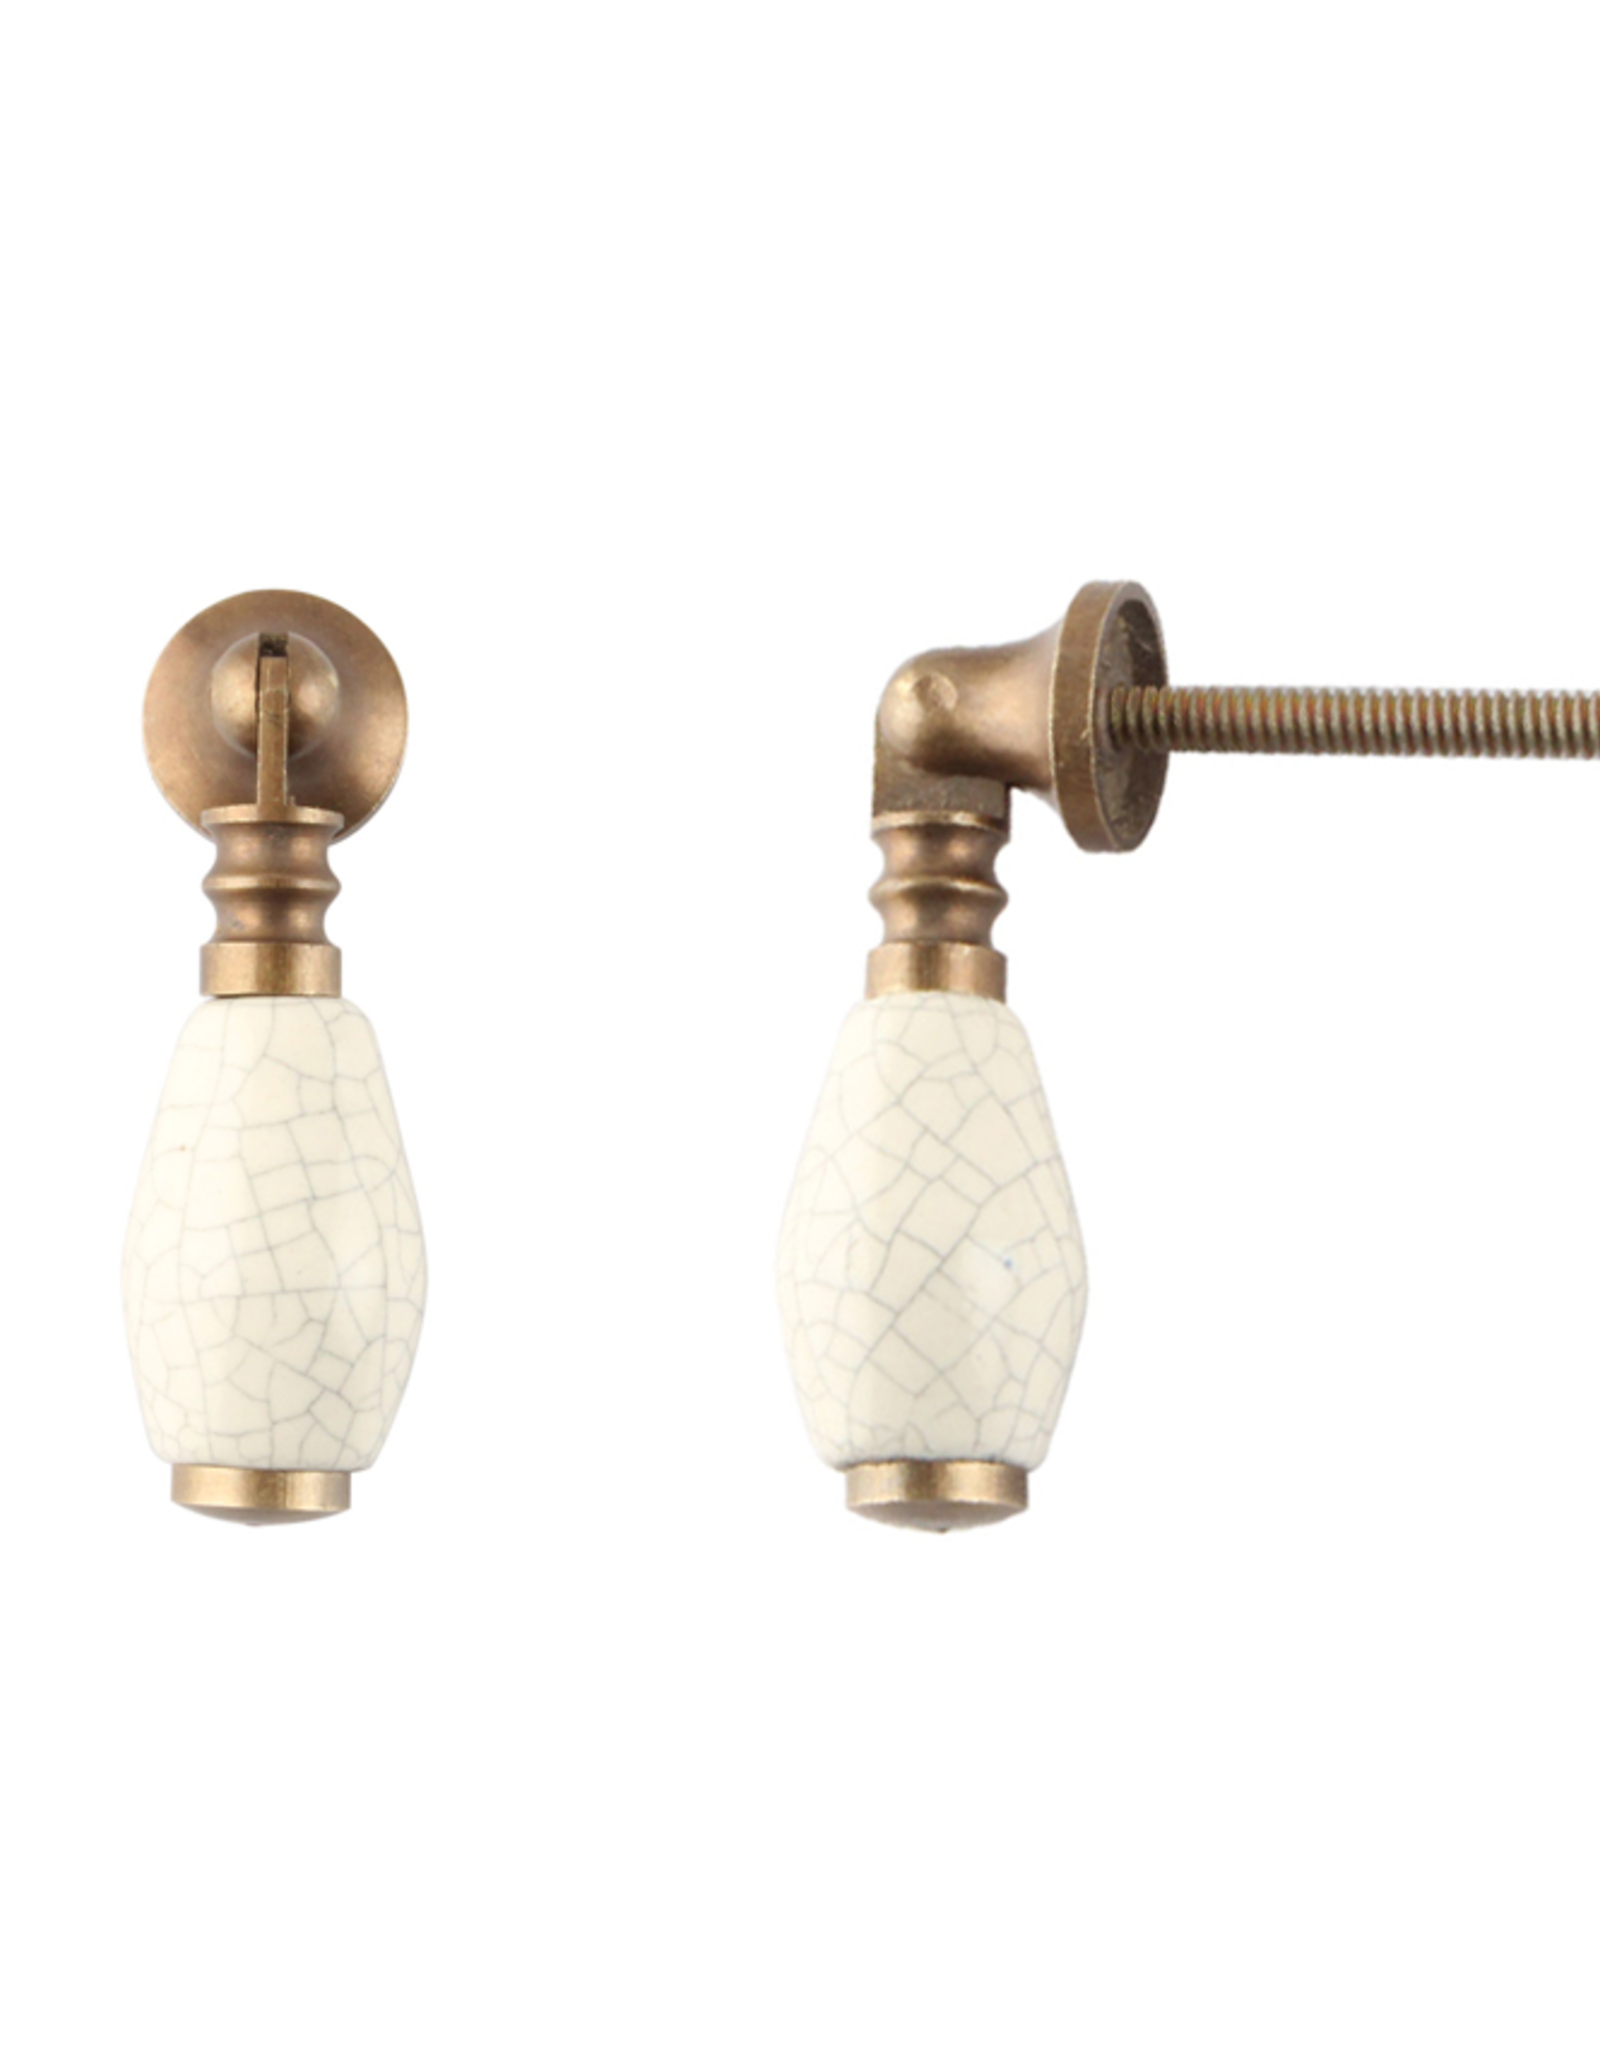 New Cream Crackle Brass Drop Pull